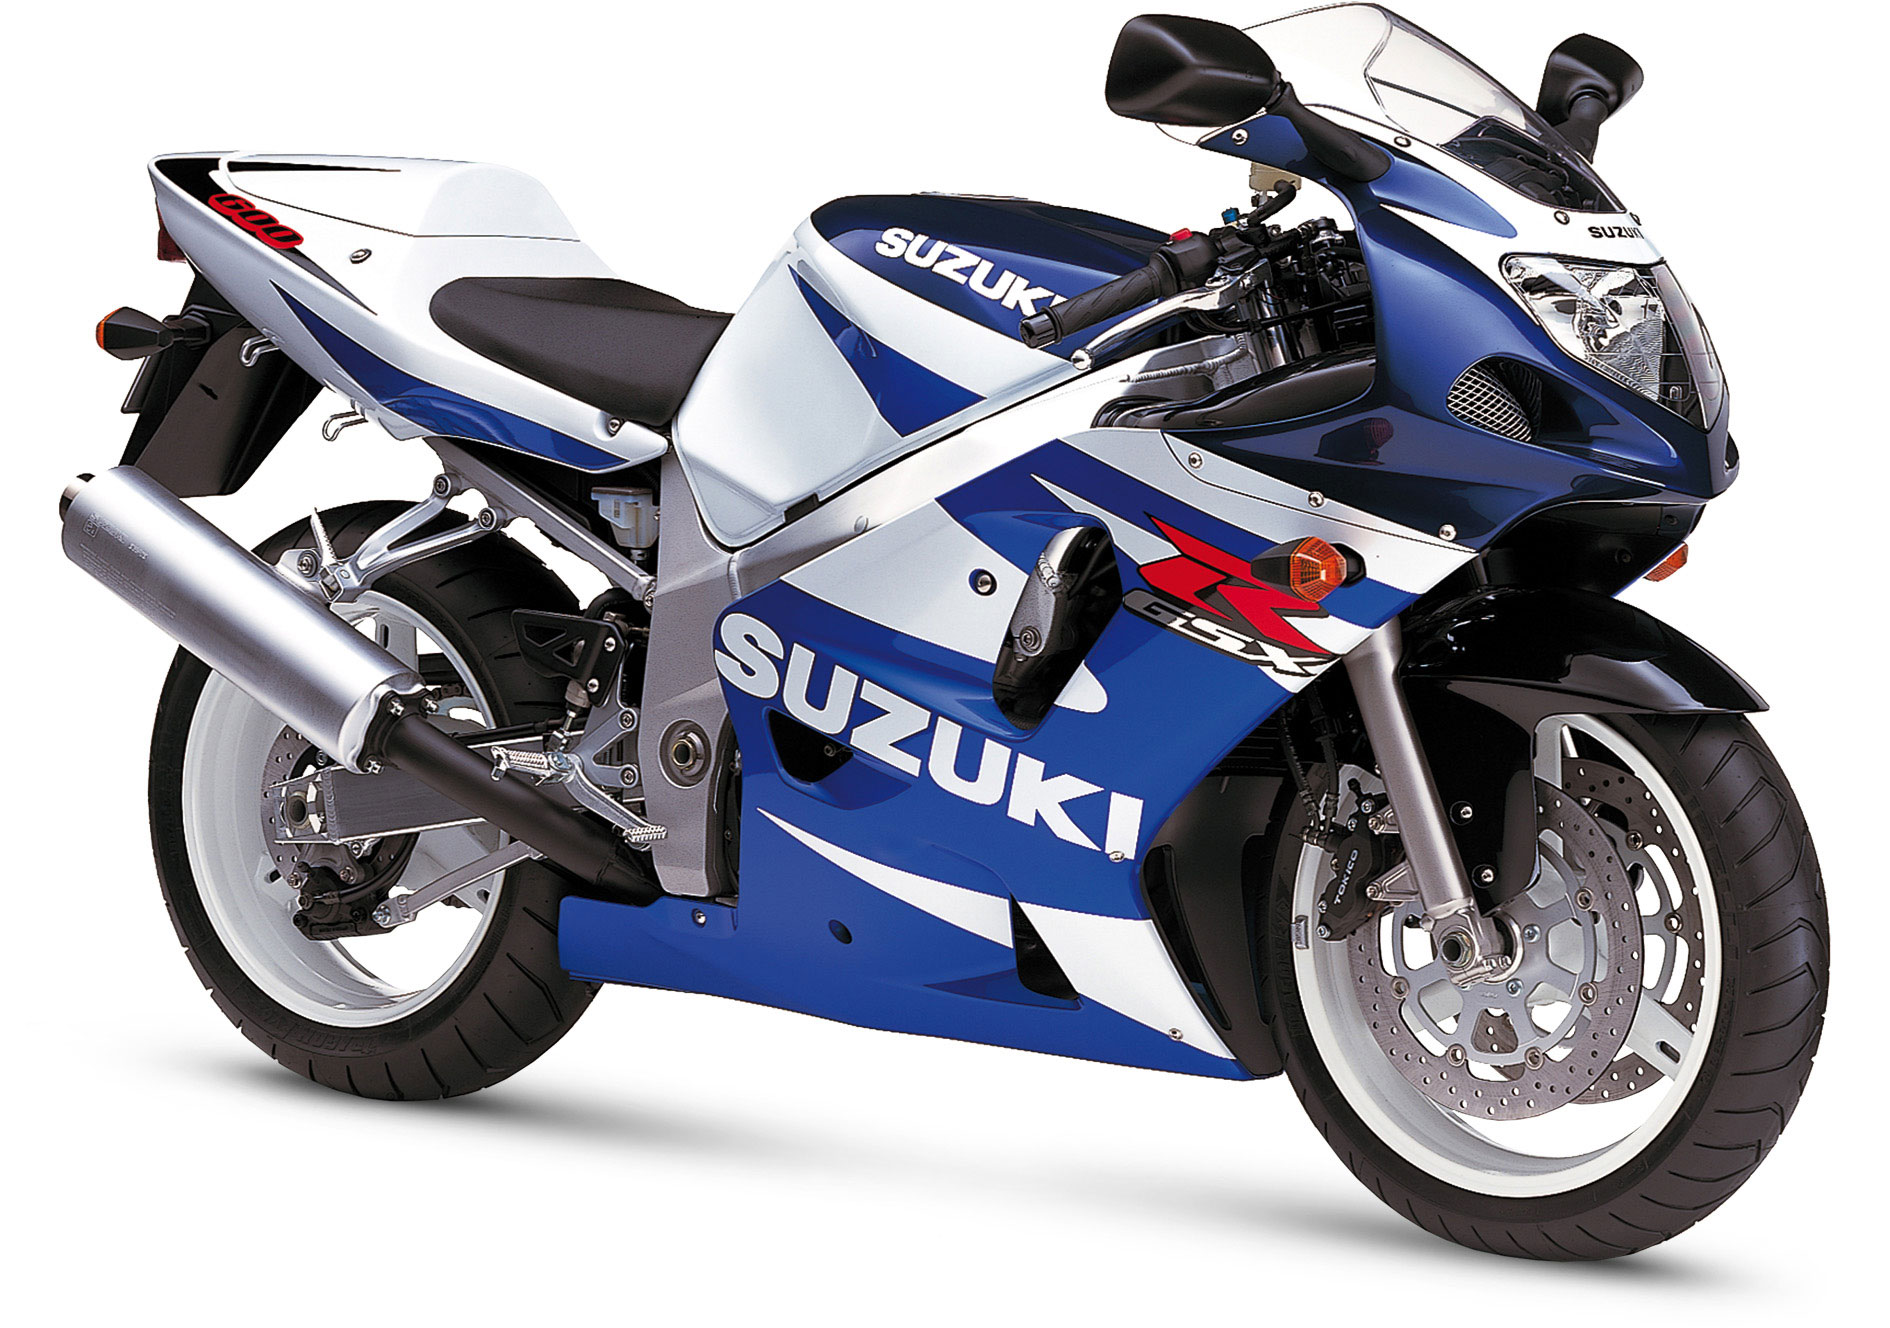 Page 3 2001 To 2003 3rd Generation Suzuki Gsx R600 With Fuel Injection